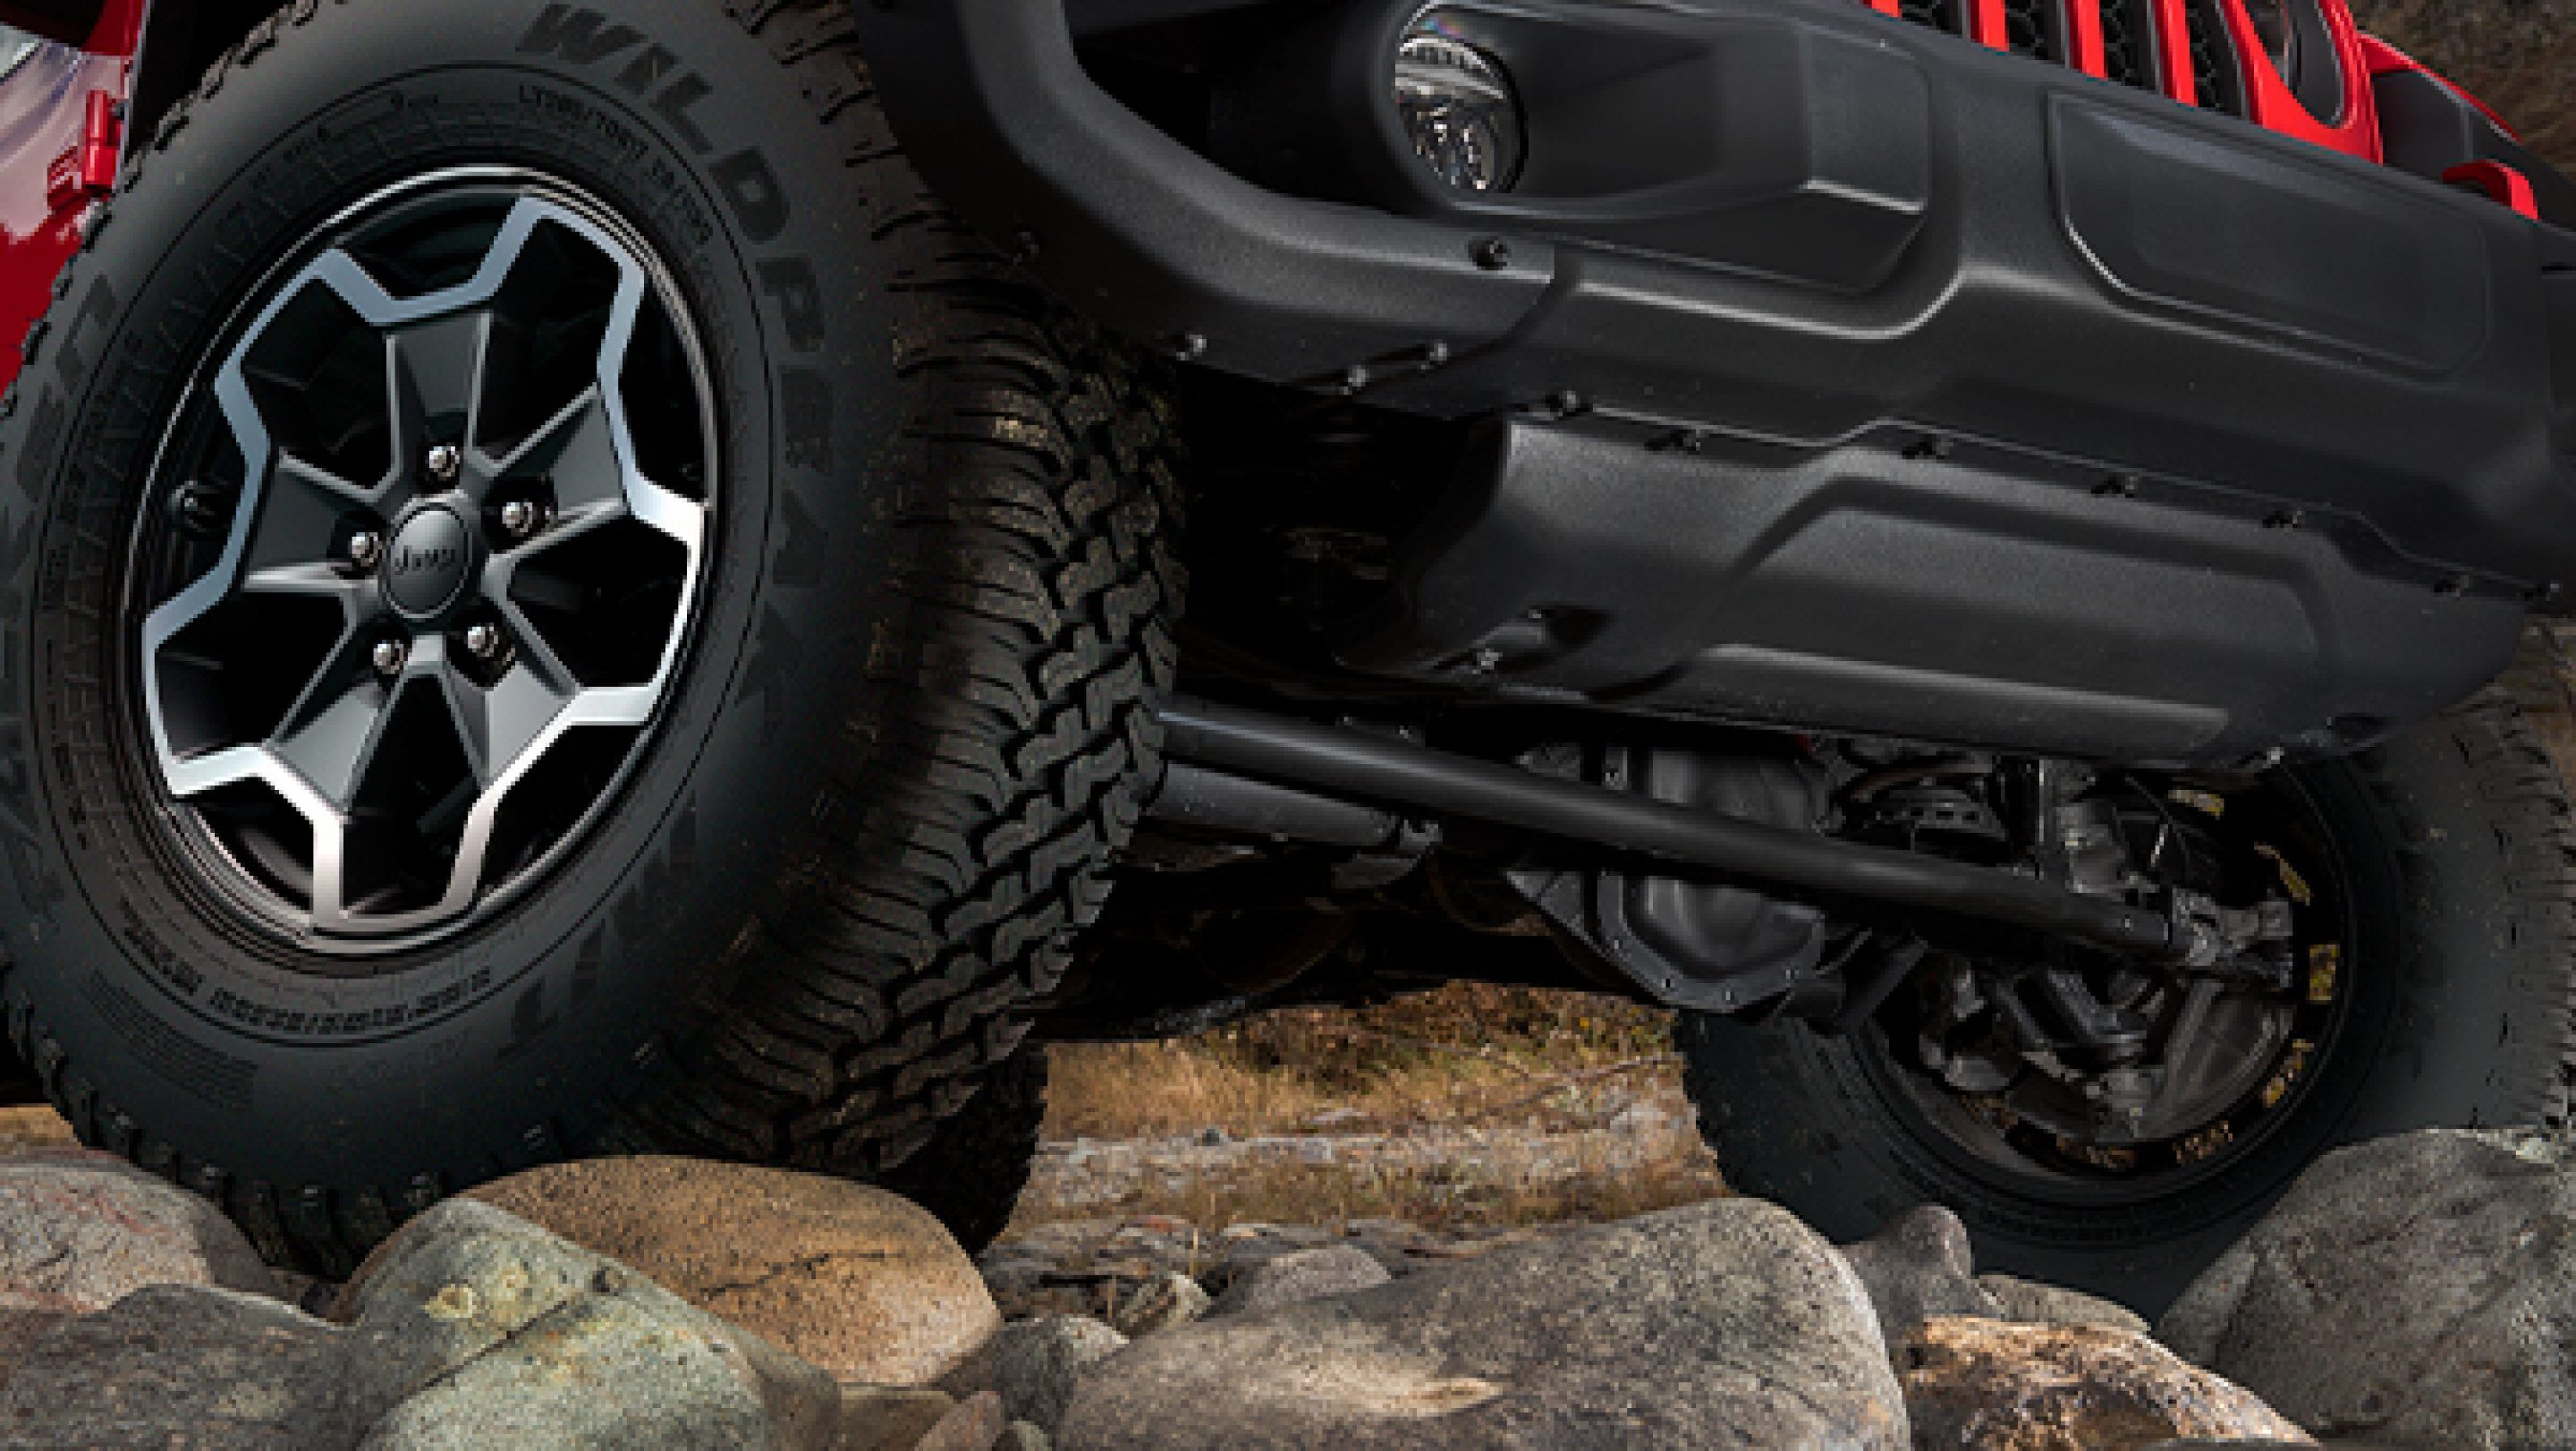 2020-Jeep-Gladiator-Capability-Solid-Front-and-Rear-Axles-Desktop-600x338.jpg.image.2880.jpg